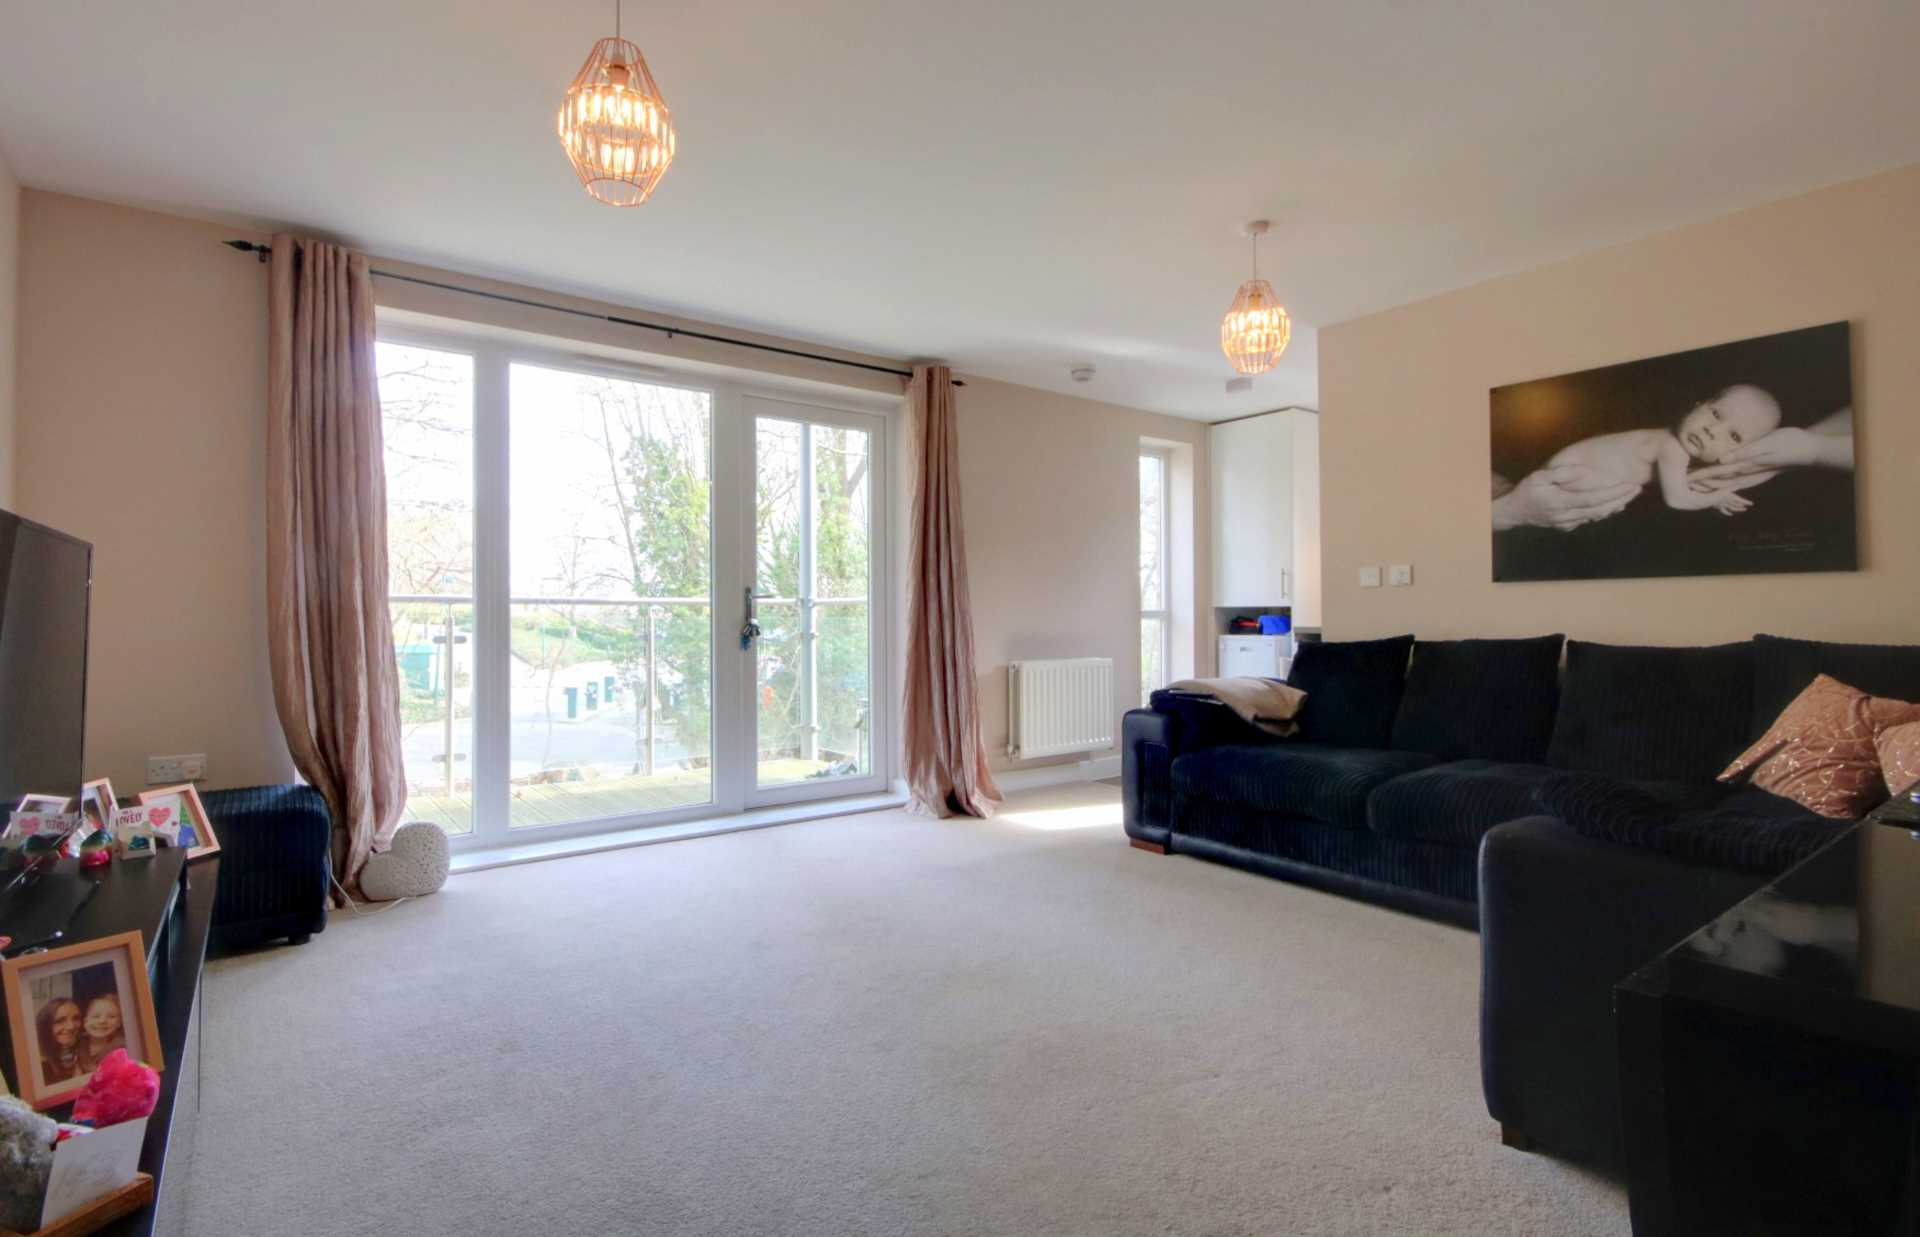 2 DOUBLE BED APARTMENT WITH 2 PARKING SPACES ON MODERN DEVELOPMENT., Image 3